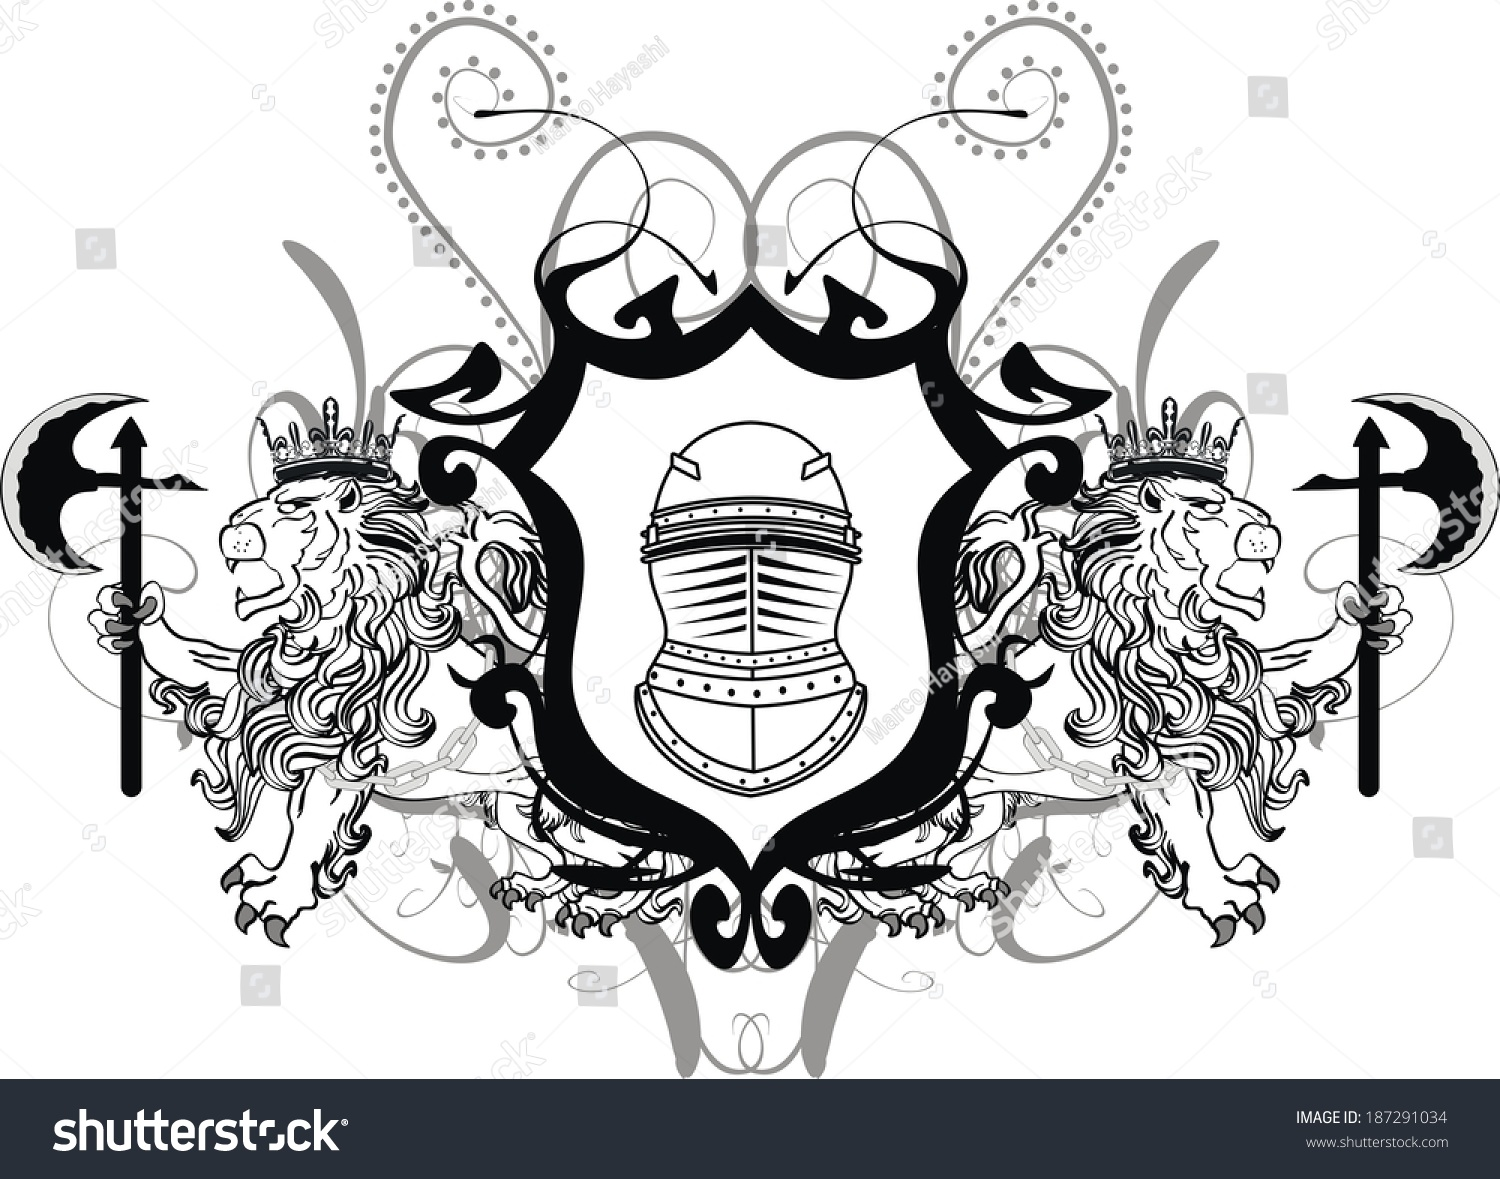 how to draw a coat of arms lion